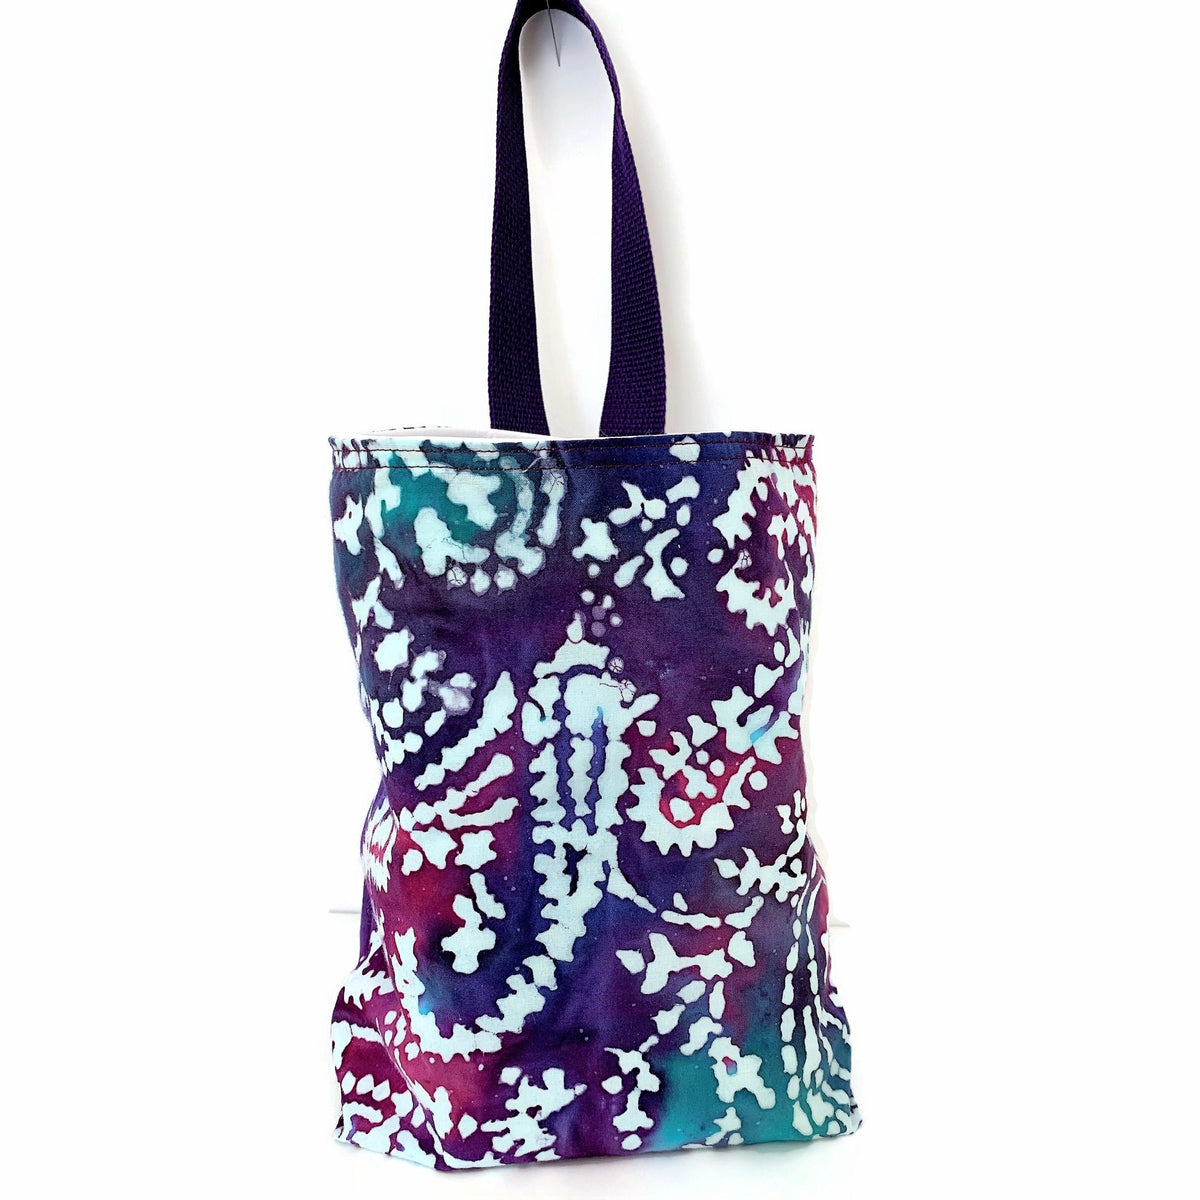 Indian Batik Paisley Purple/Fushia/Teal Car Trash Bag - Car Accessory - Tissue Holder for Cars